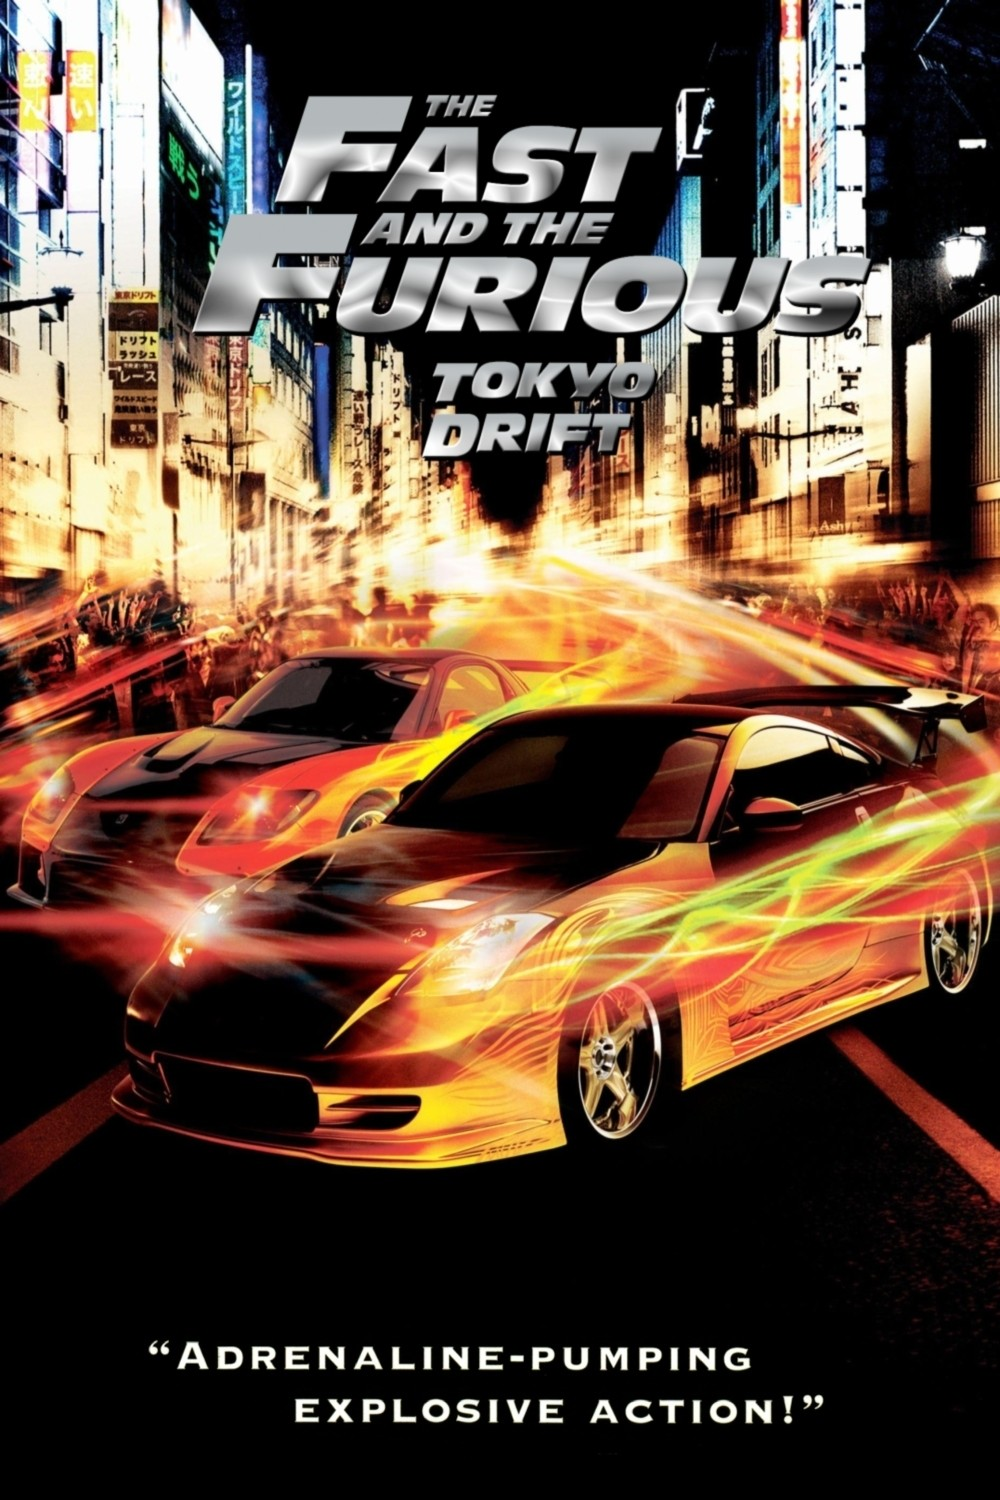 Image Result For Fast Furious Full Movie Tokyo Drift